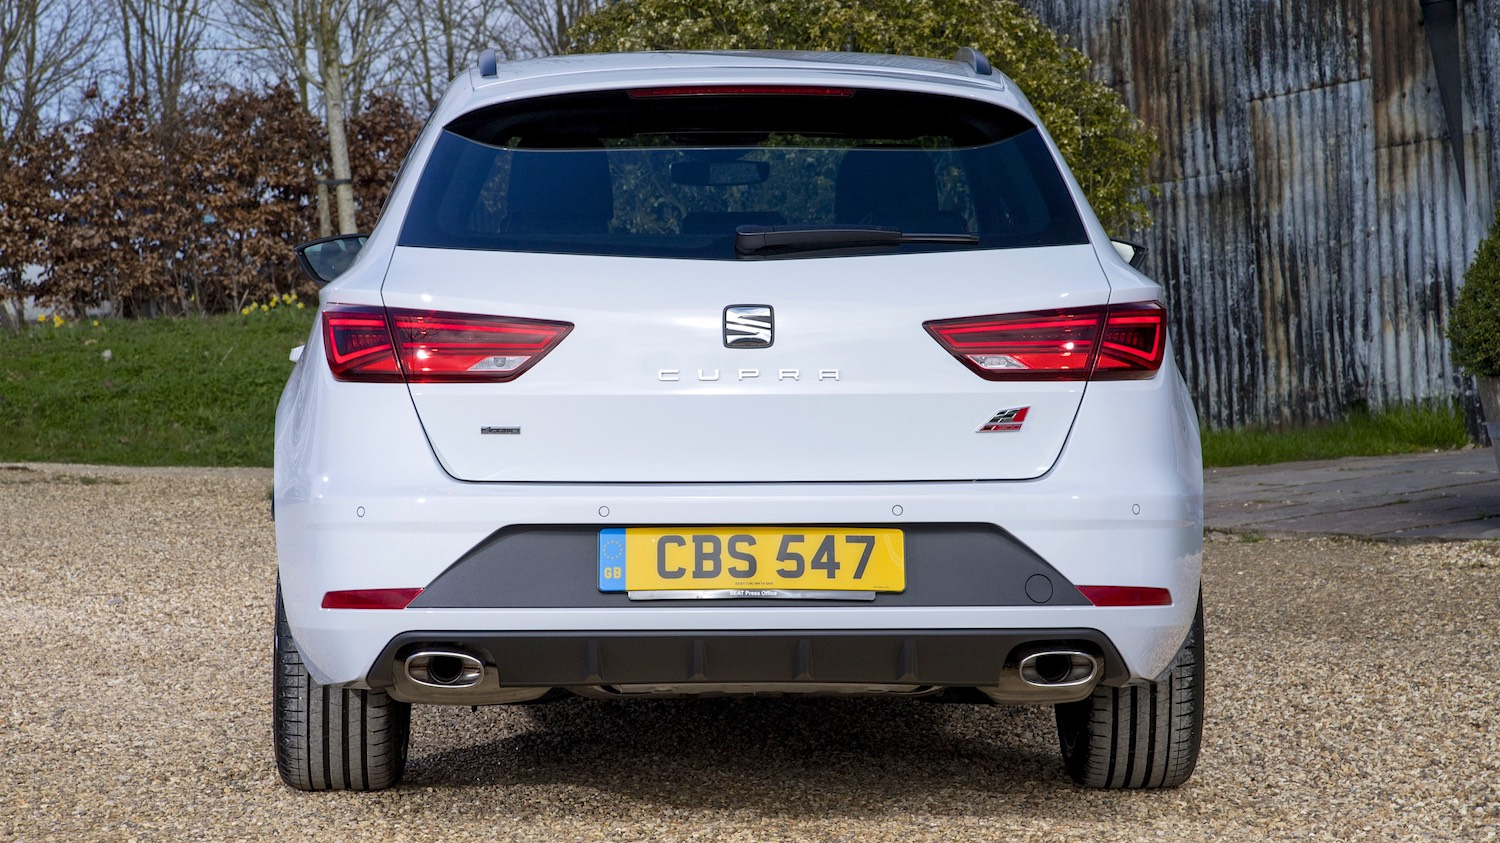 Tom Scanlan reviews the SEAT LEON CUPRA 300 TSi 4Drive for Drive 10